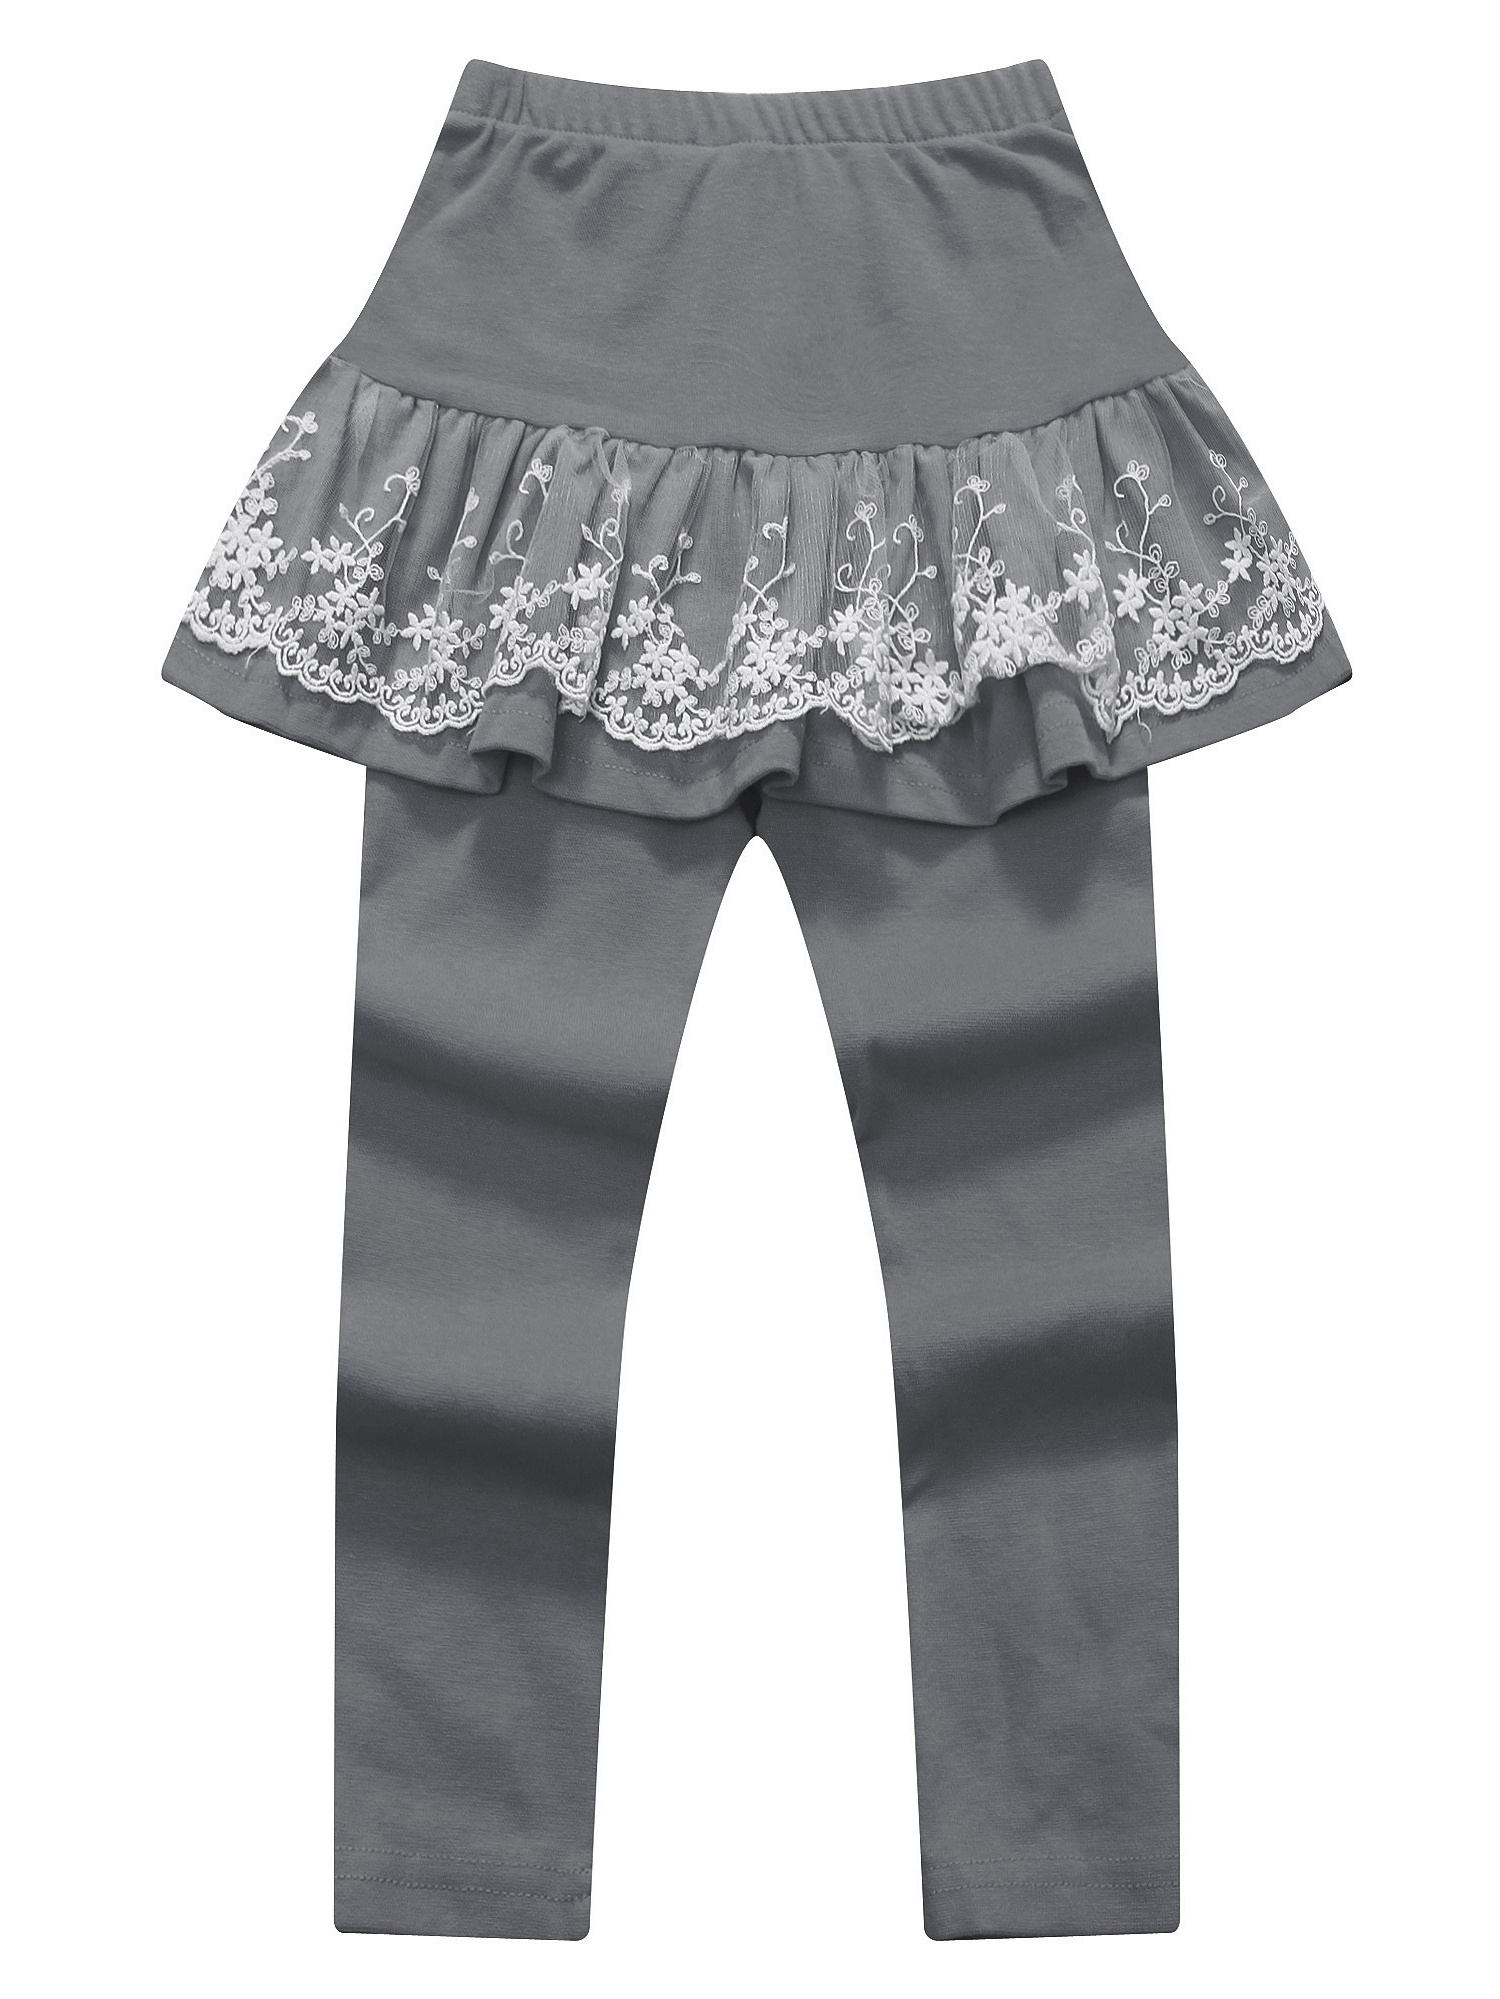 Richie House Girls' Pants with Lace Accented Skirt RH0887